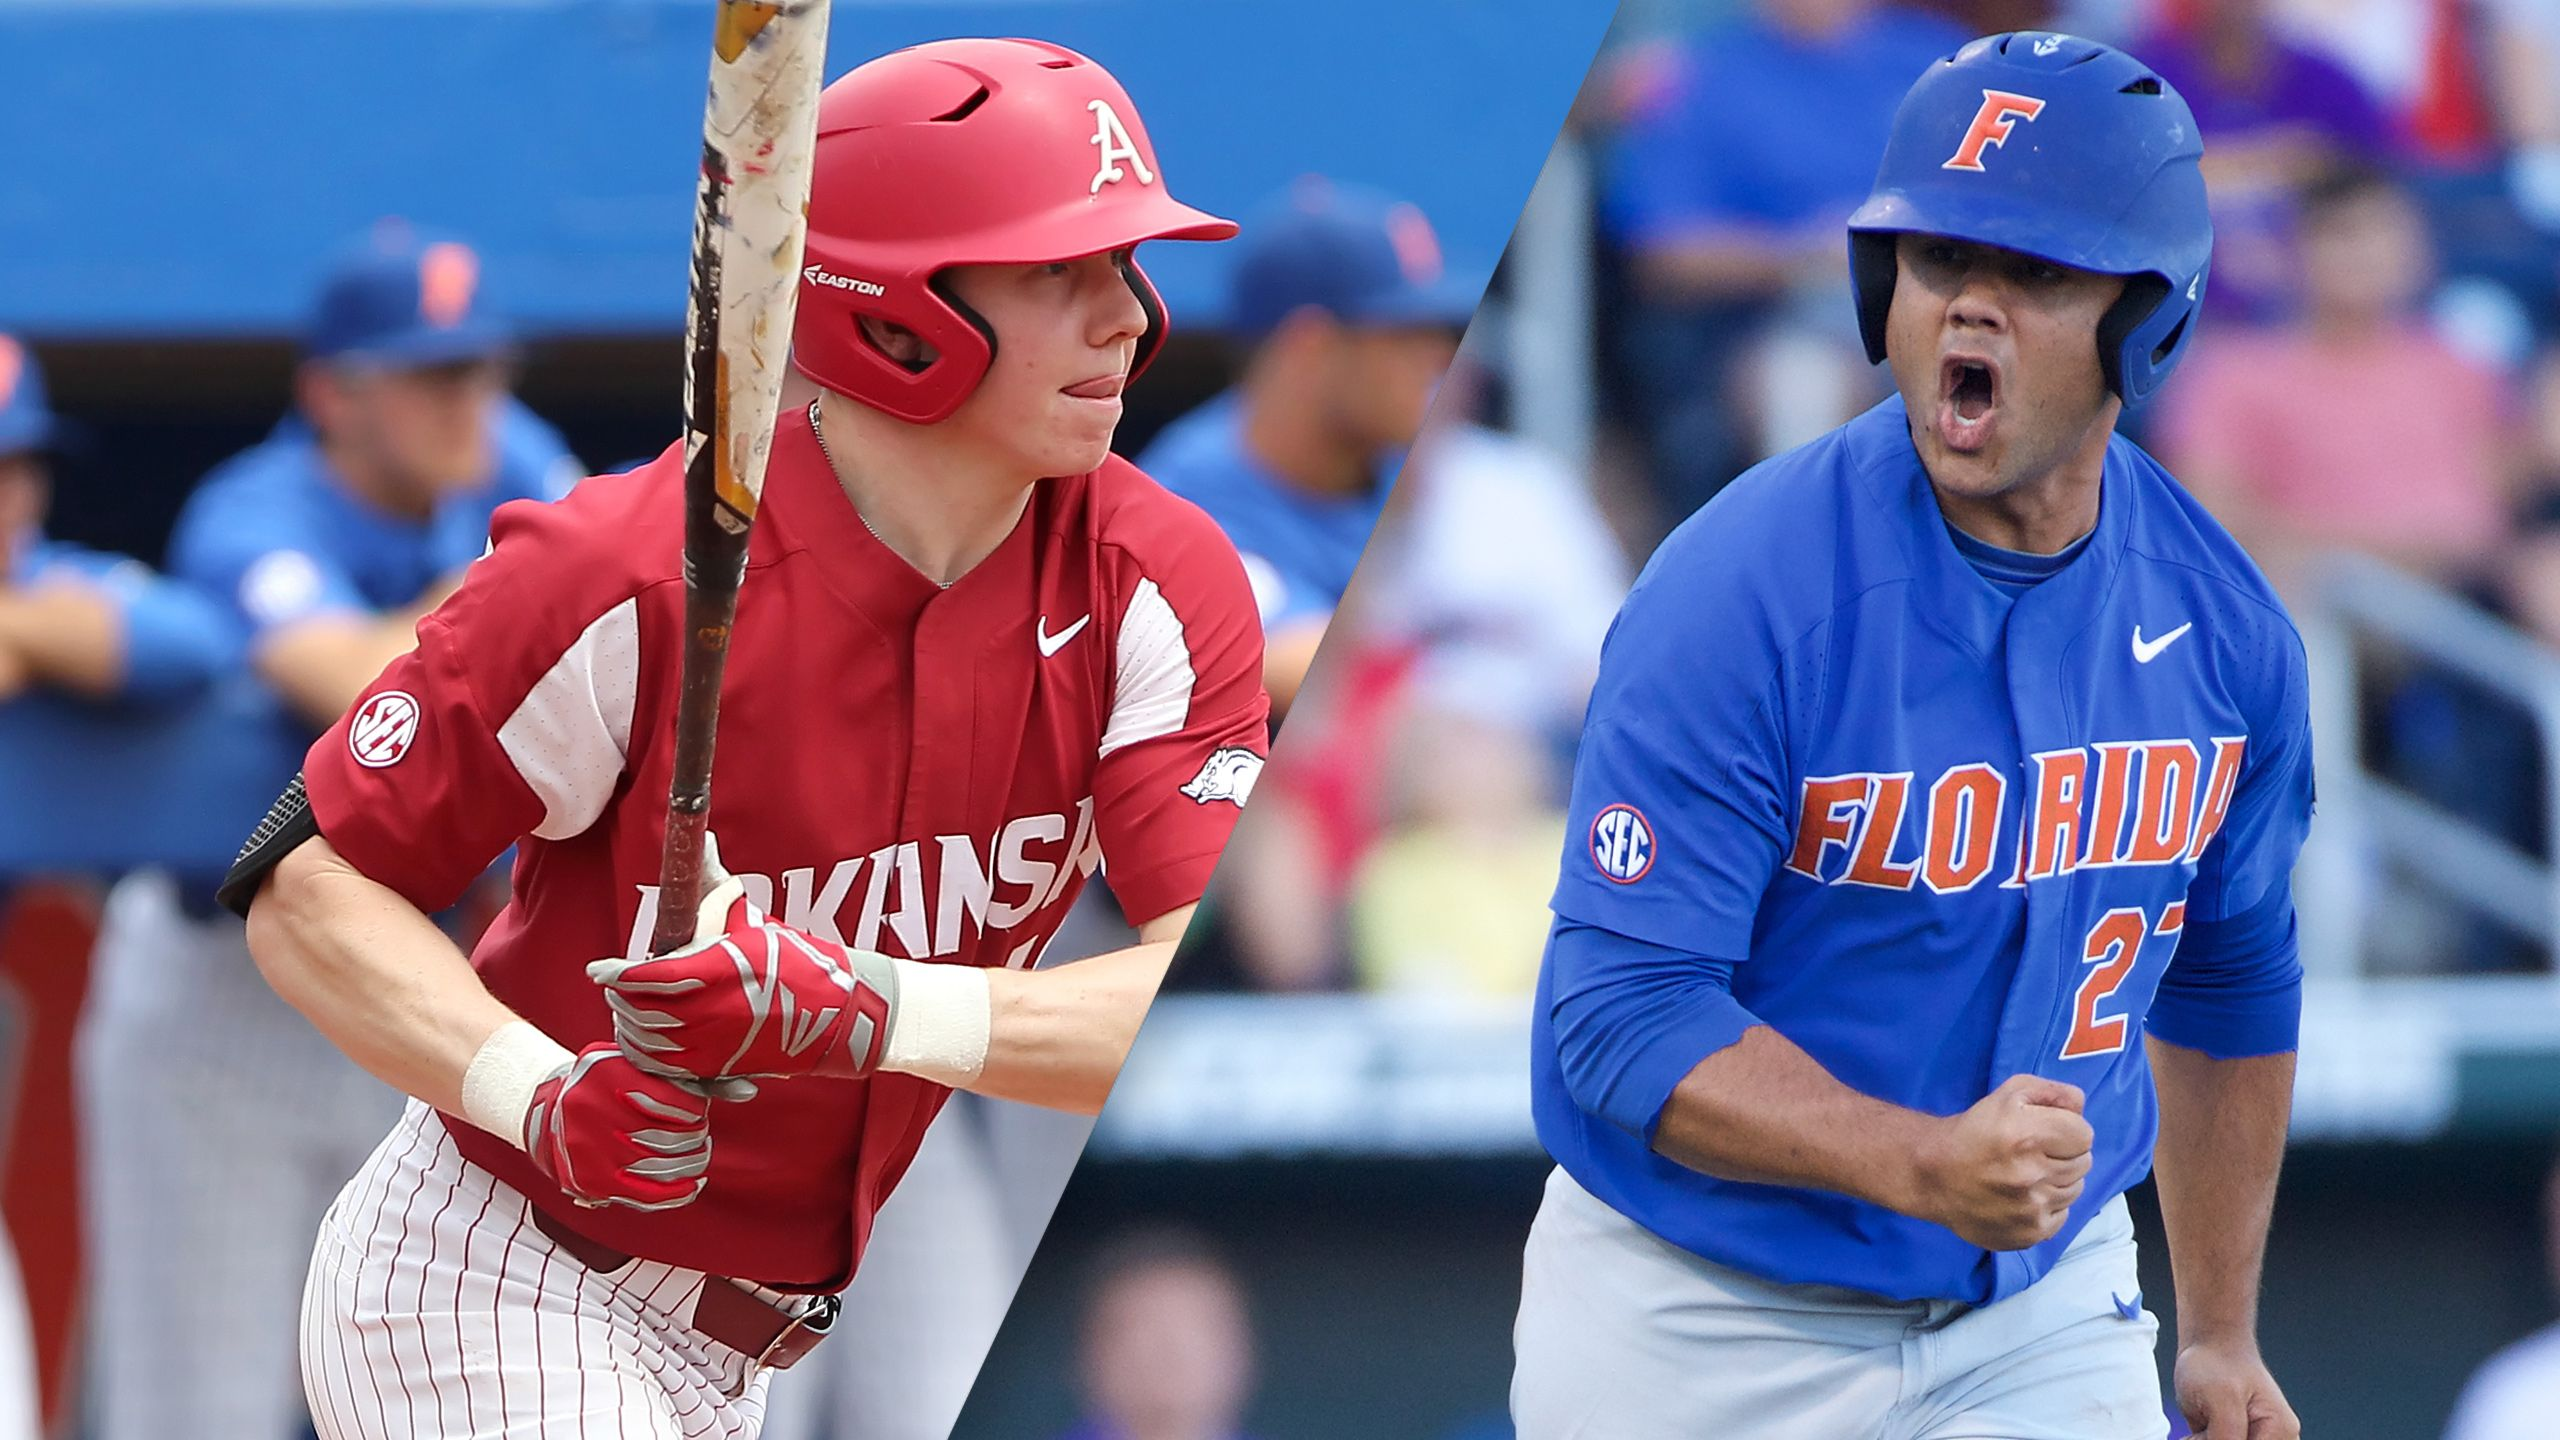 #5 Arkansas vs. #1 Florida (Game 12) (College World Series)